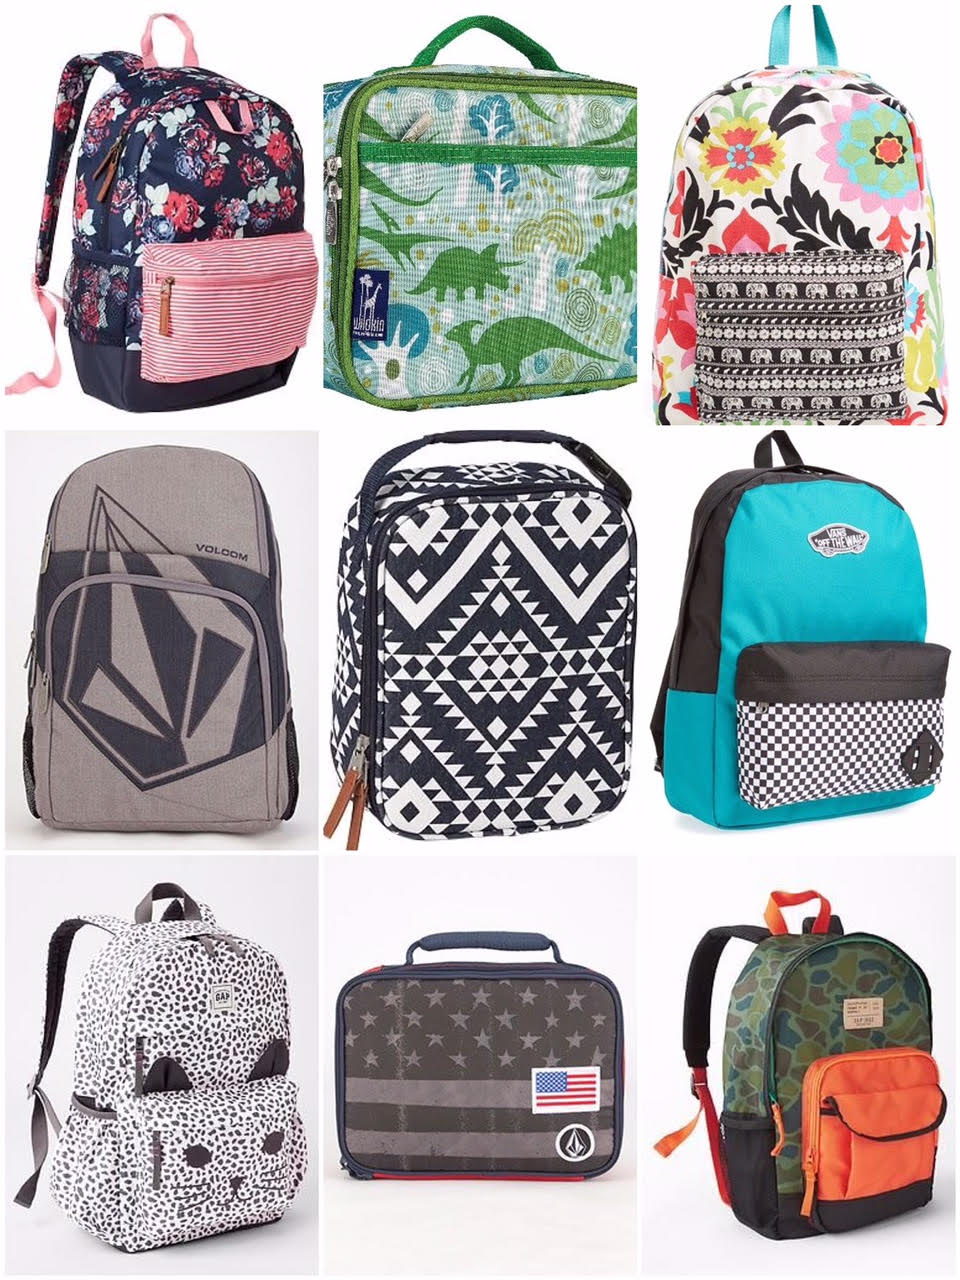 a47a7822cb Friday Finds: Backpacks & Lunch Boxes : Rage Against The Minivan